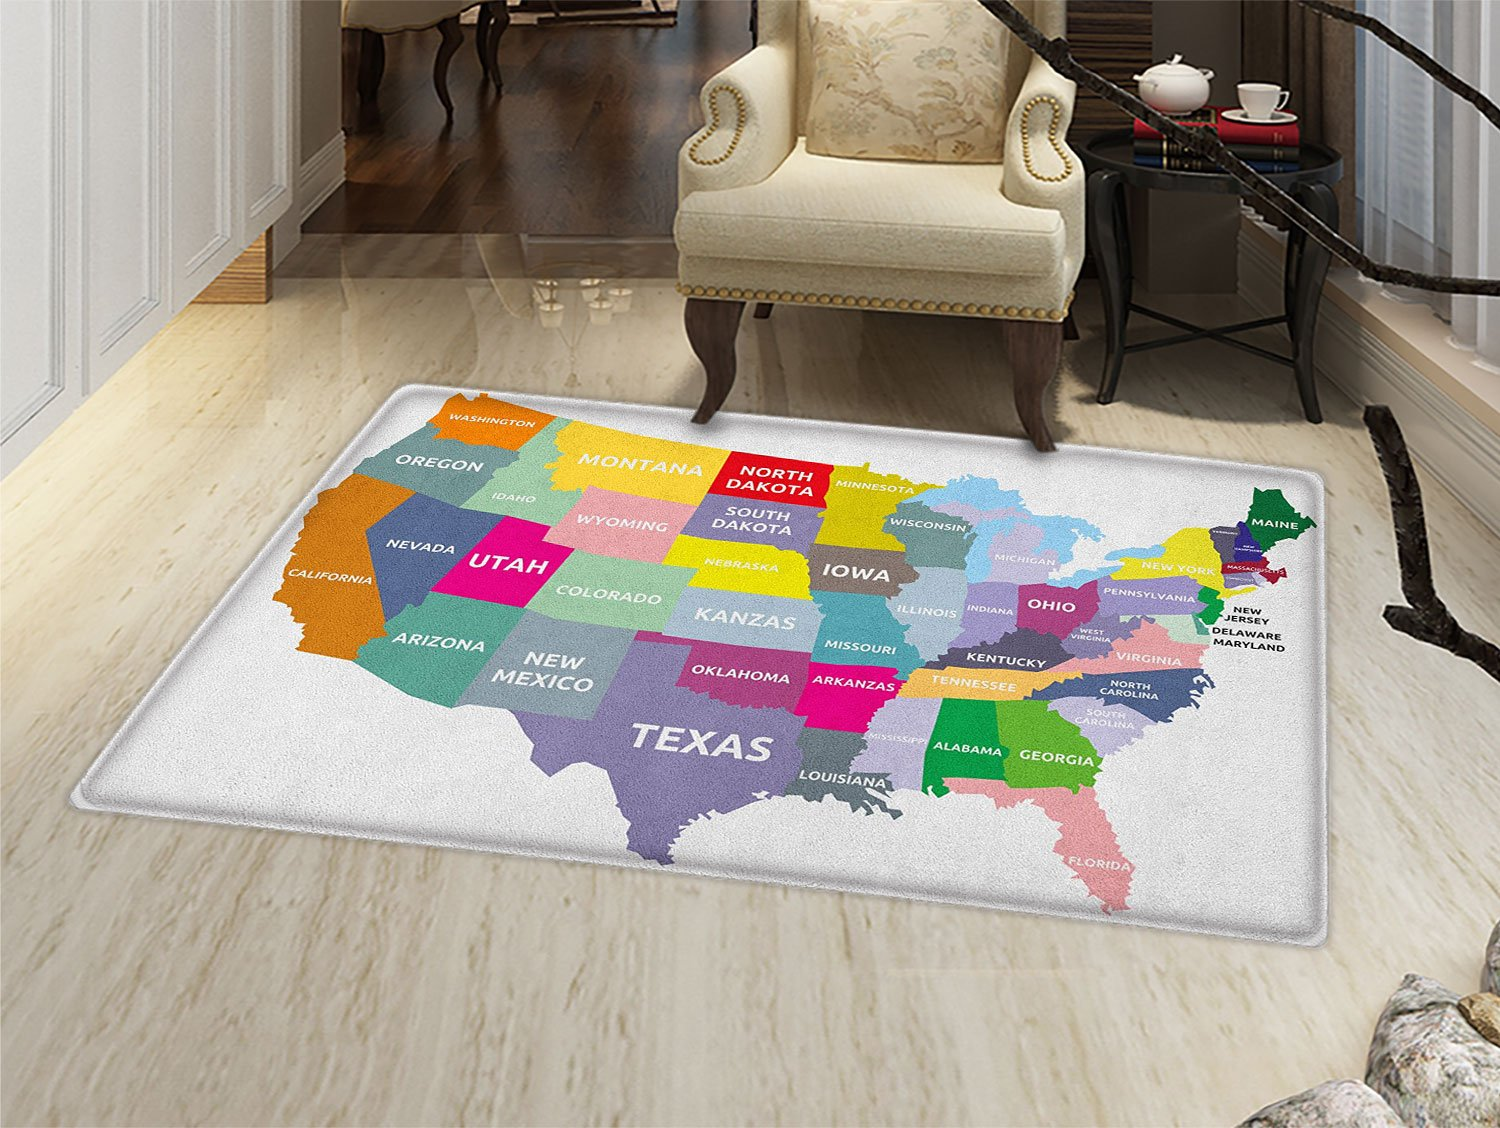 Map Door Mat outside USA Map with Name of States in Different Colors America Geography Cartography Theme Bathroom Mat for tub Non Slip Multicolor